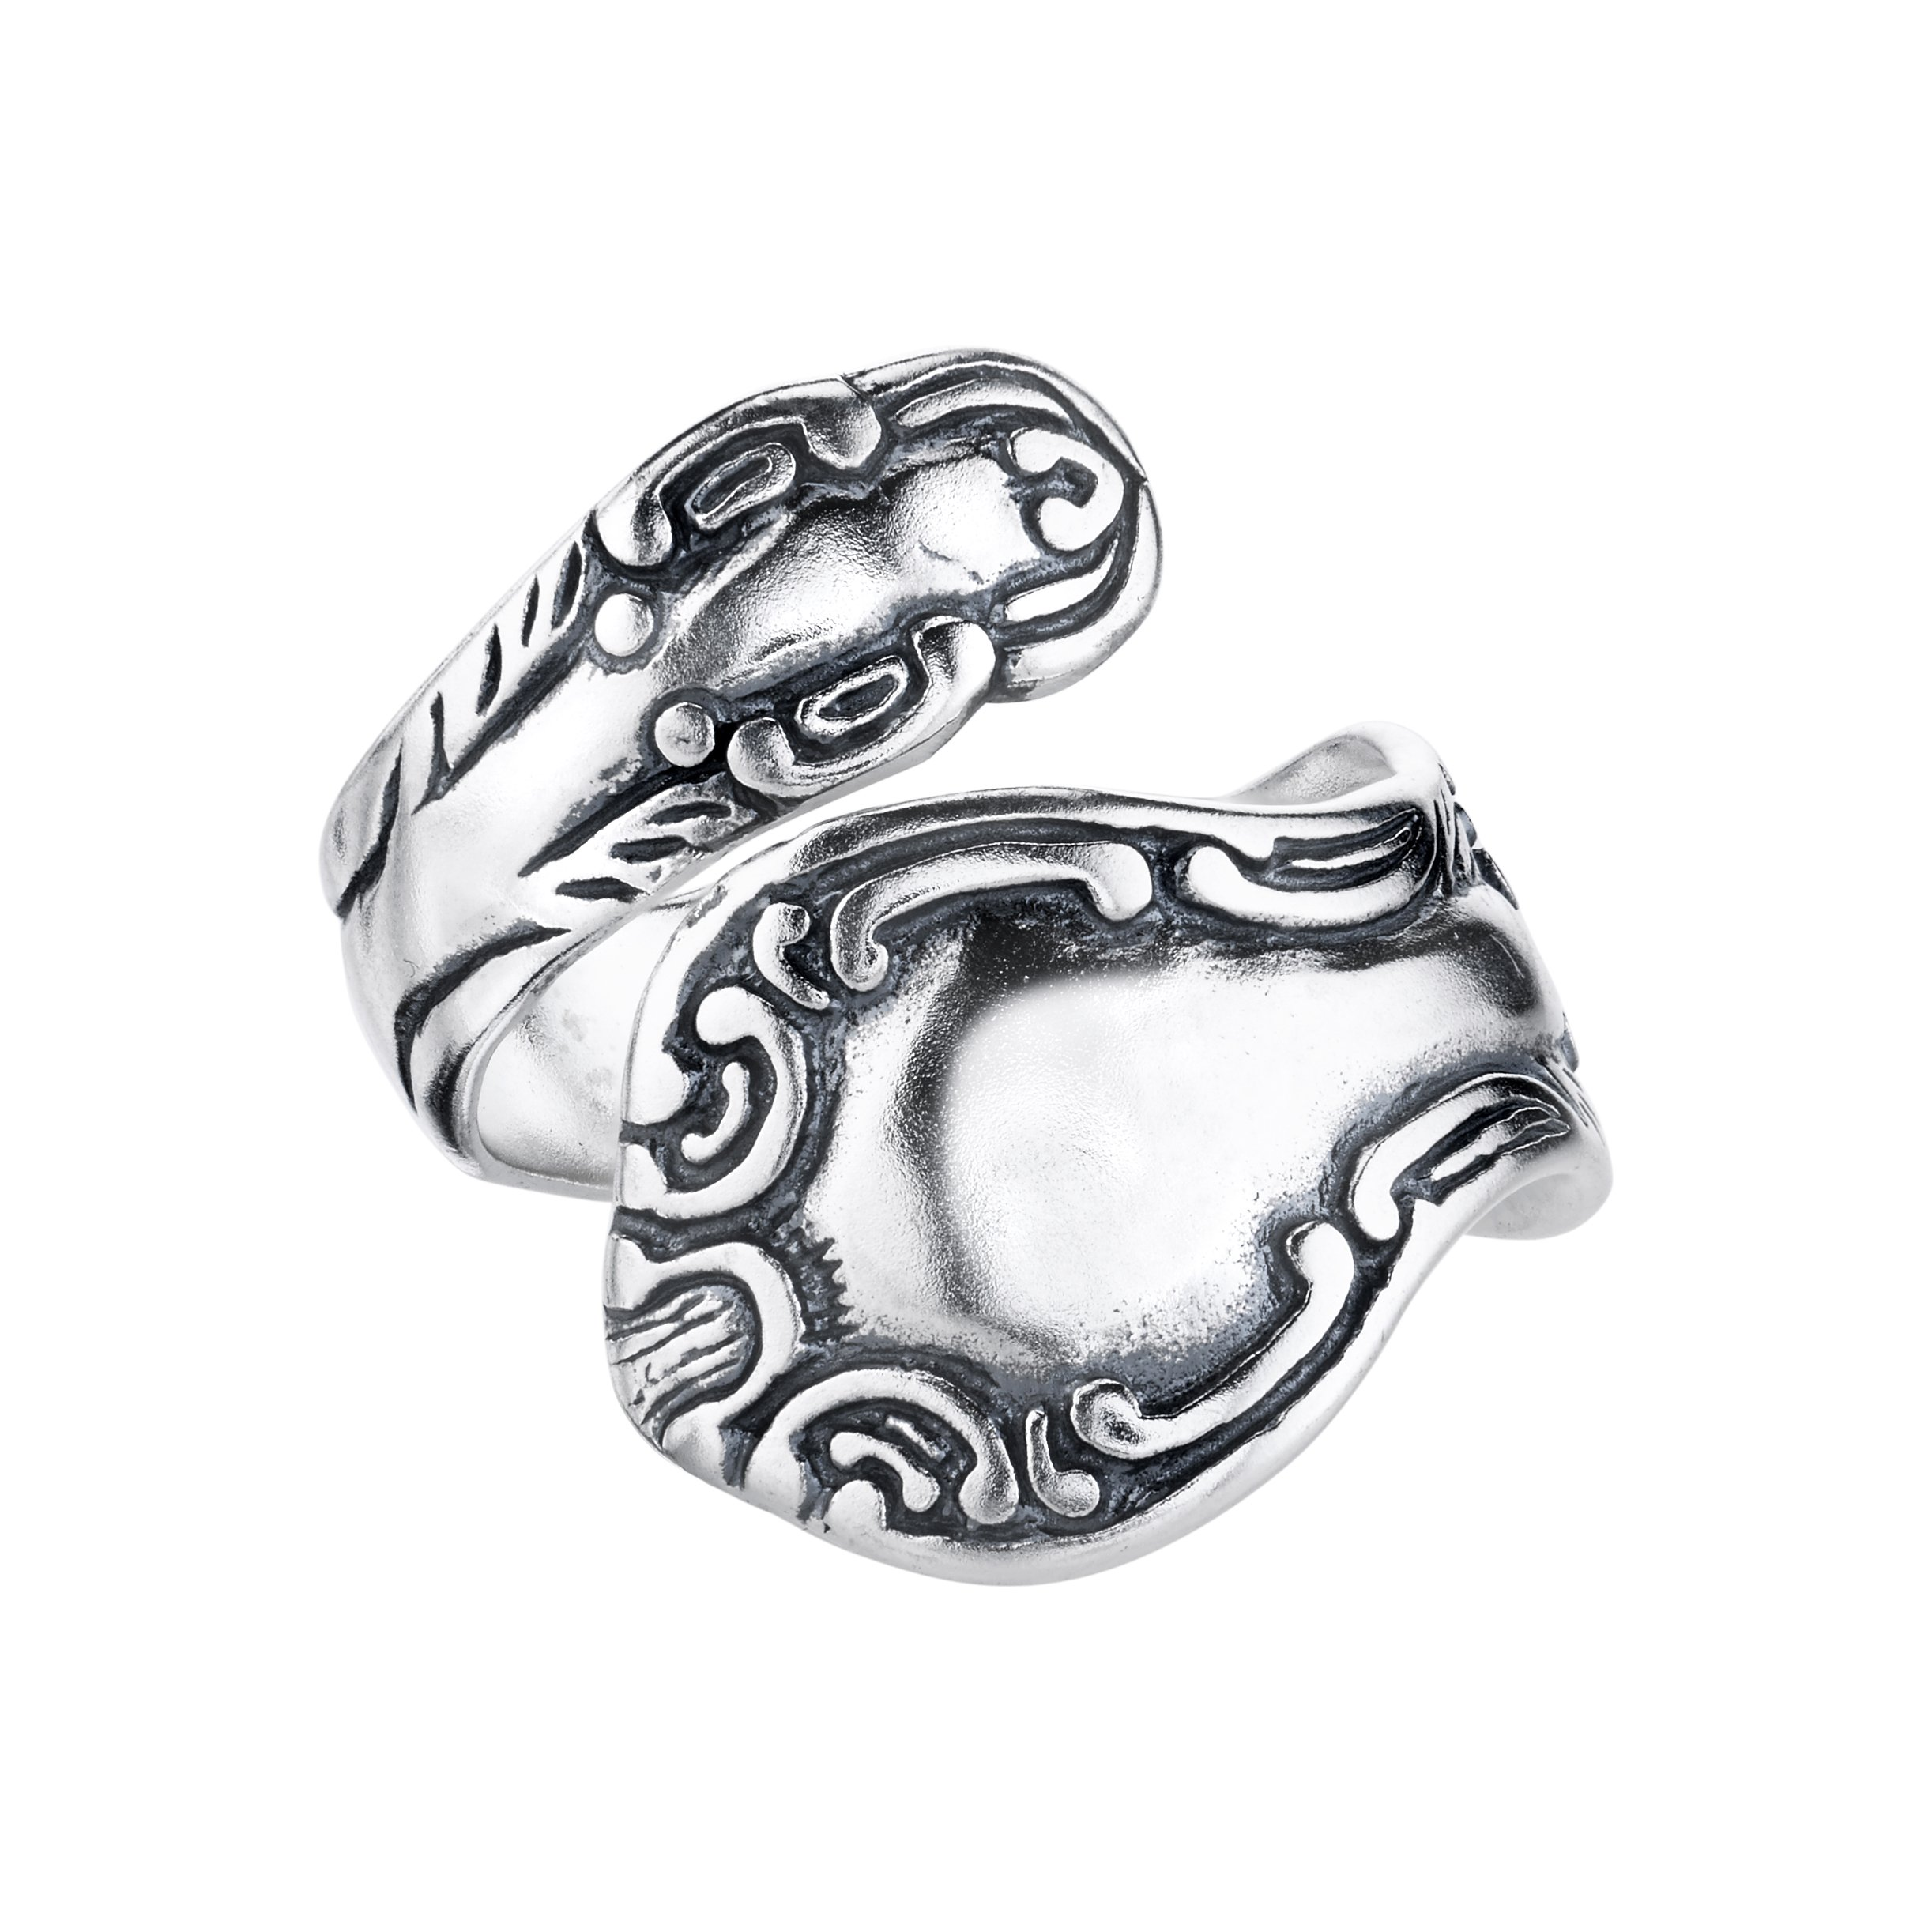 BSE Sterling Silver Swirl Motif Spoon Style Ring, Sizes 6-11 by BSE